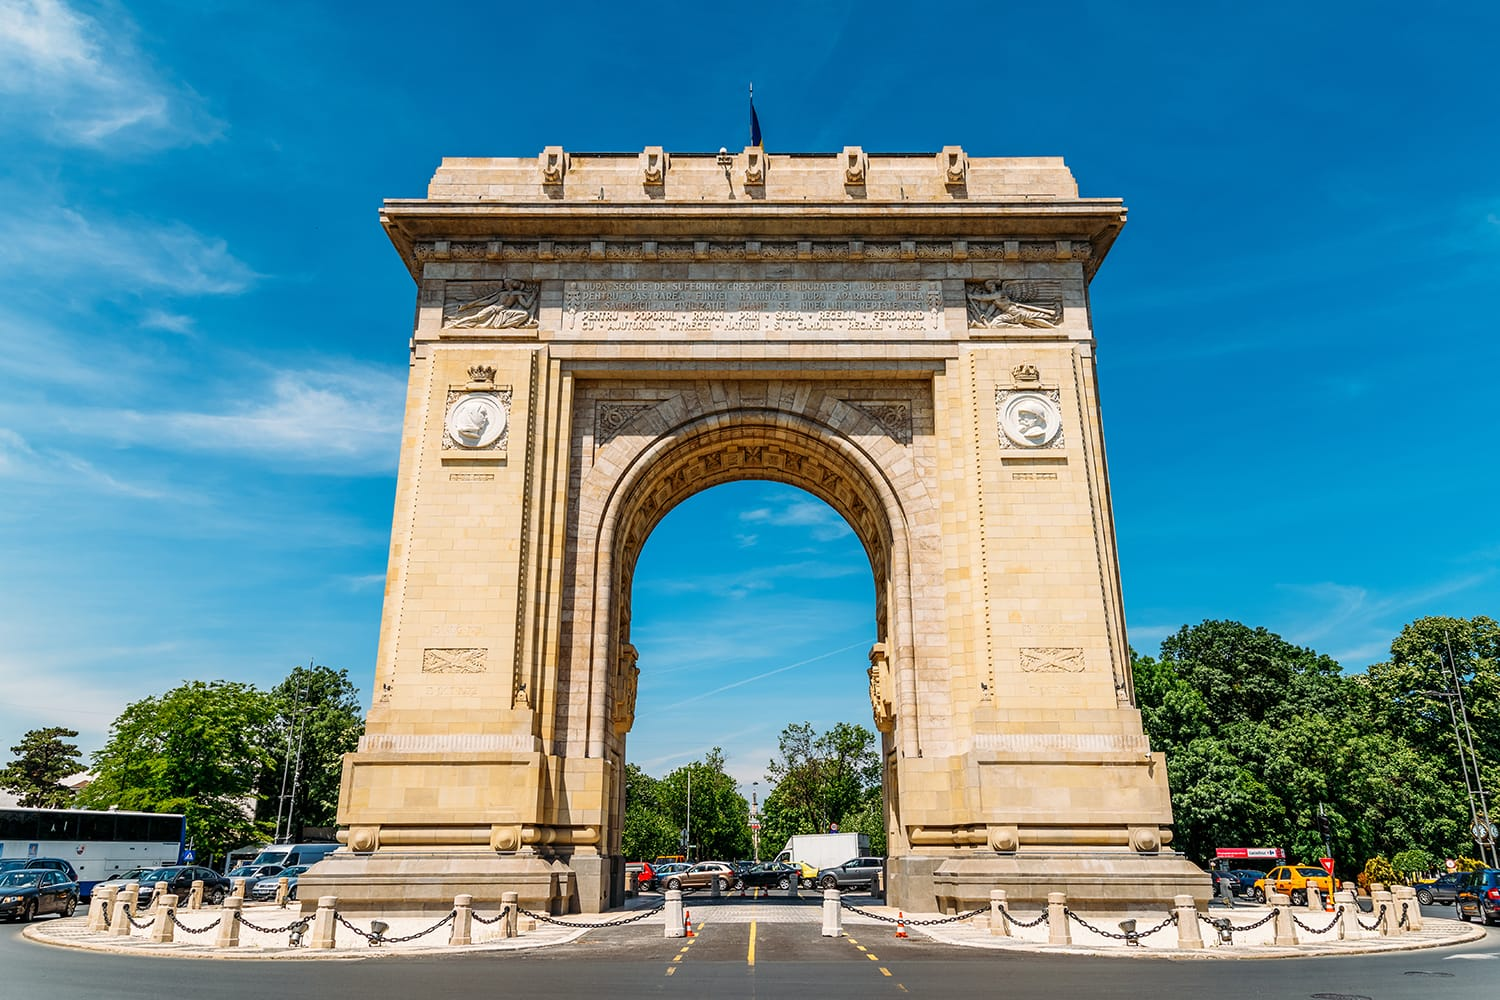 Built in 1936 Arcul de Triumf is a triumphal arch located in the northern part of Bucharest on Kiseleff Road.